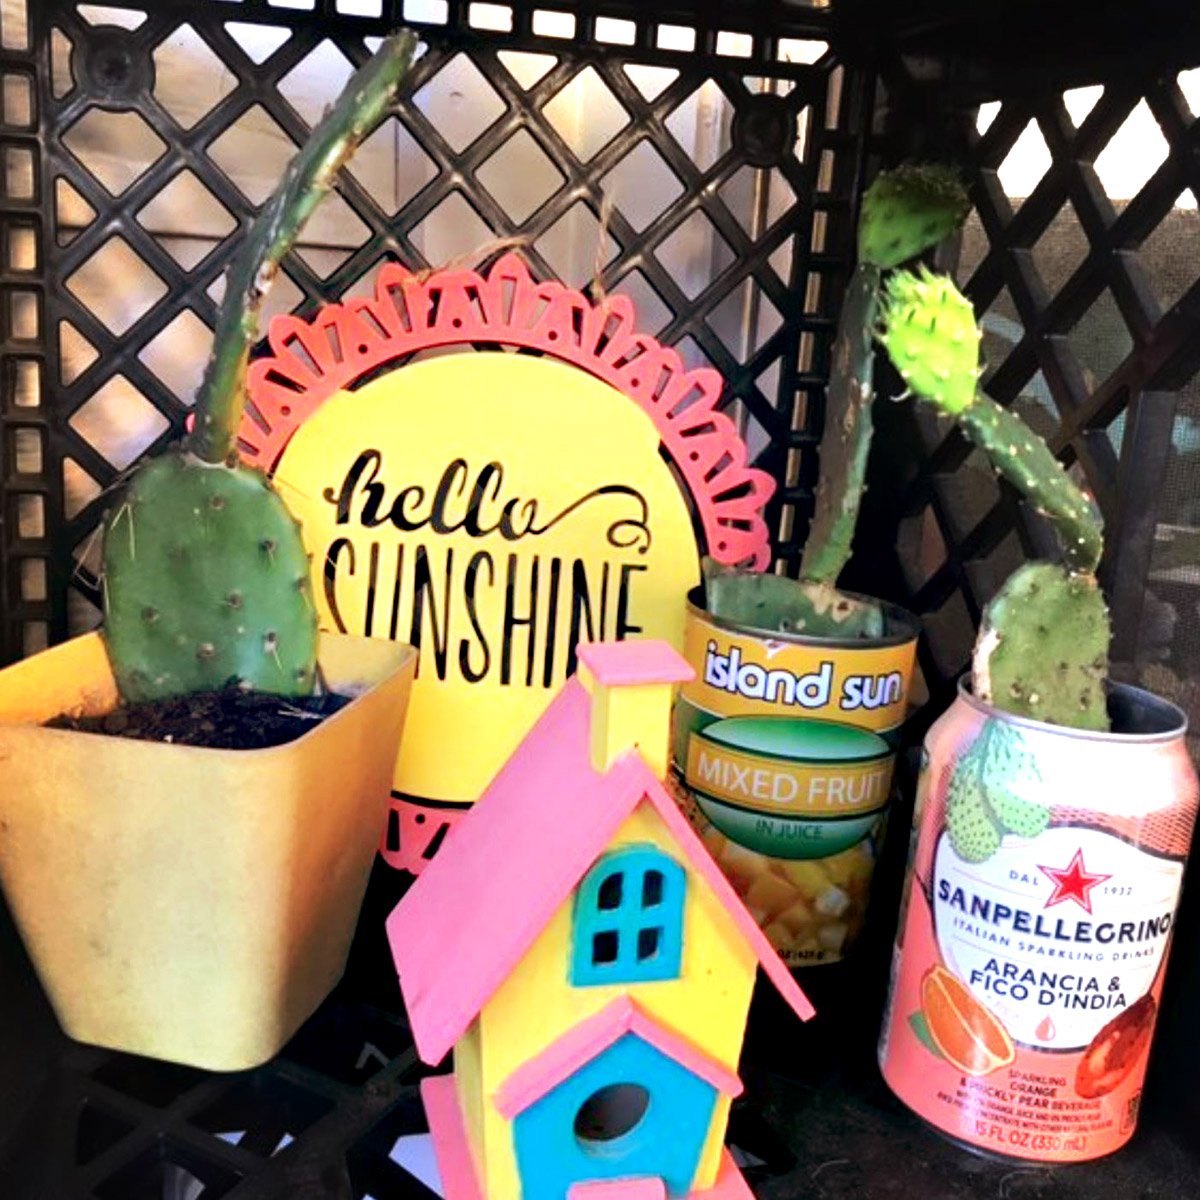 Hello Sunshine Indoor Plant Area Setup by @IAgreeSnowClouds on Instagram, featuring cactus and more